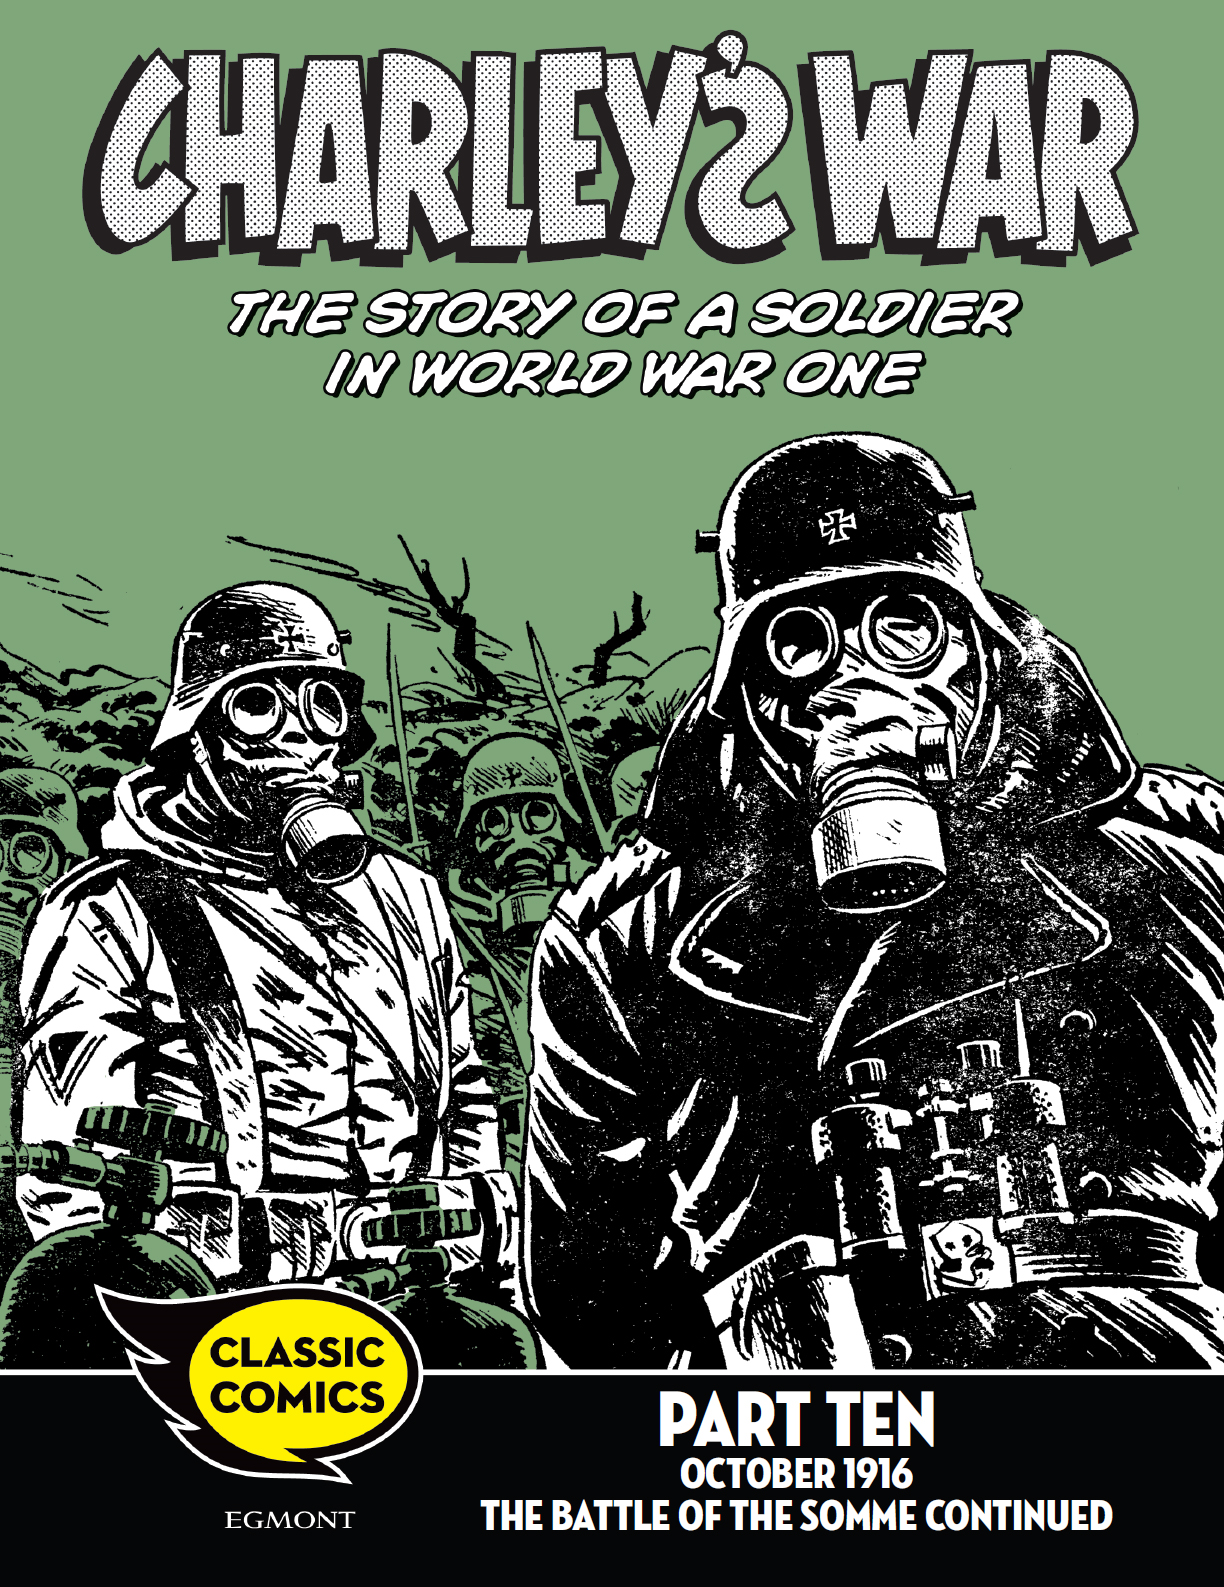 Charley's War Comic Part Ten: October 1916 The Battle of the Somme continued